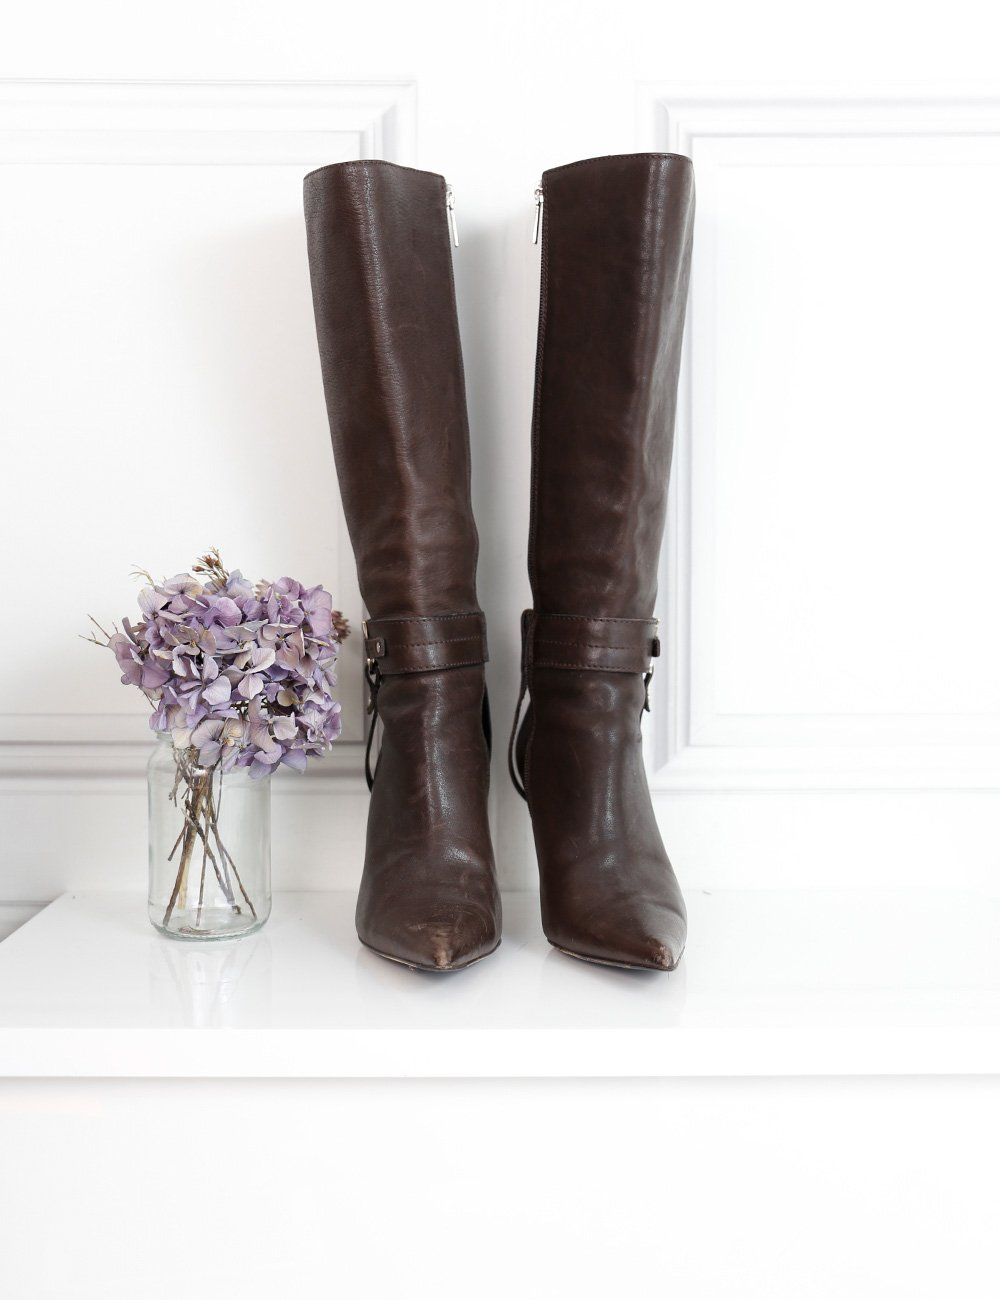 Dior brown pointed toe knee-high boots with logo C and D 5UK- My Wardrobe Mistakes